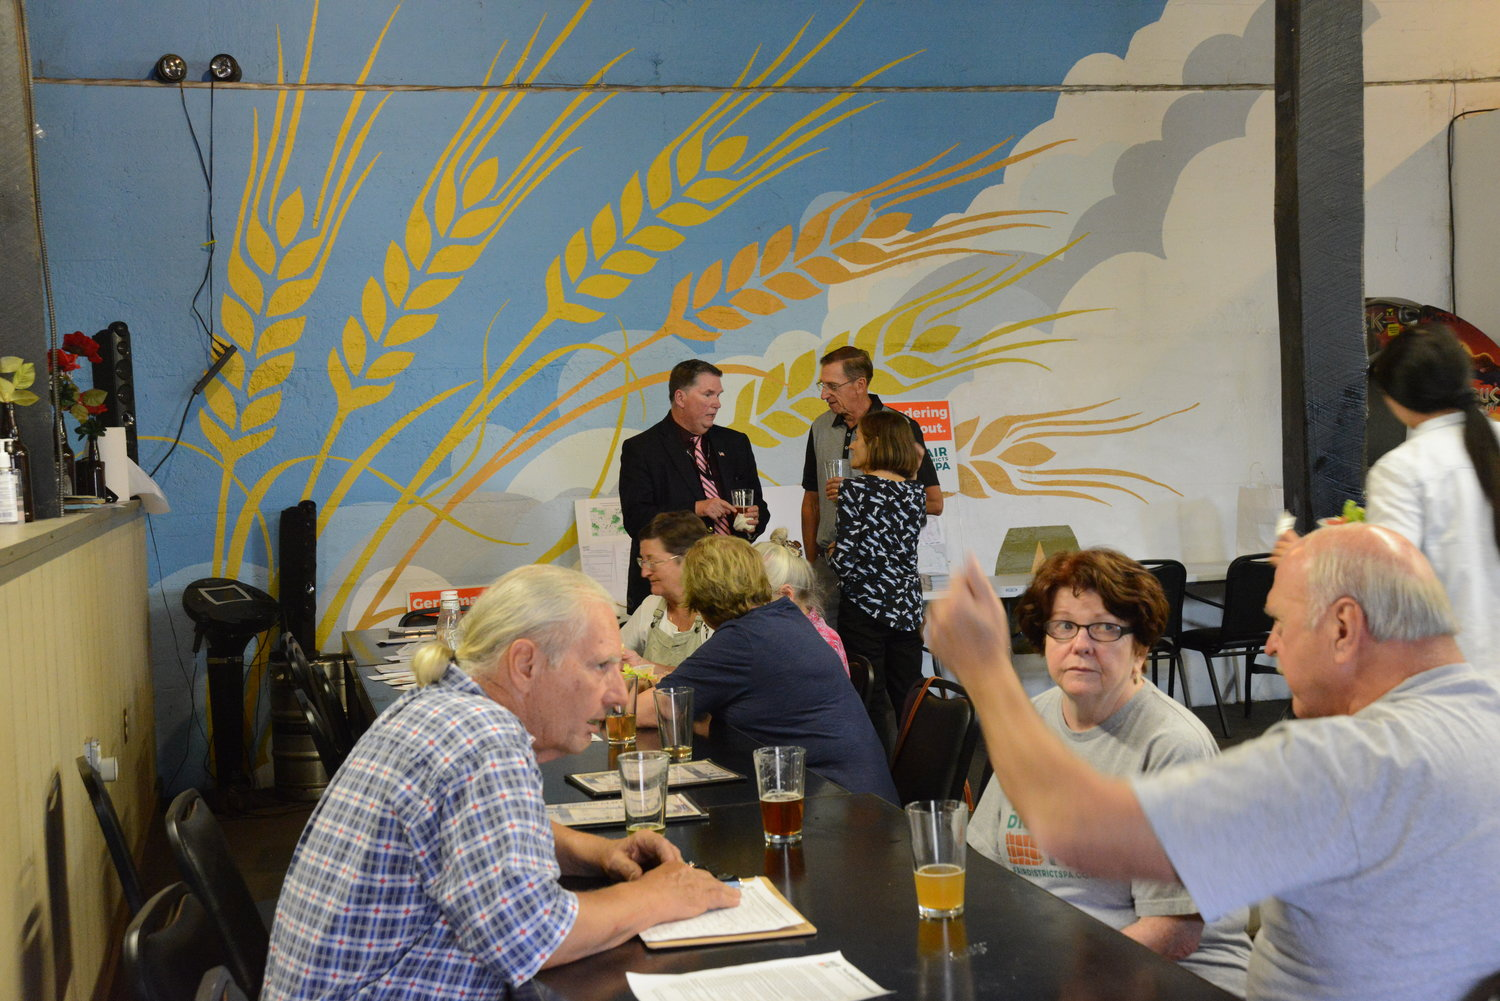 Wayne County residents discuss politics over some beer and food at the Iriving Cliff Brewery.